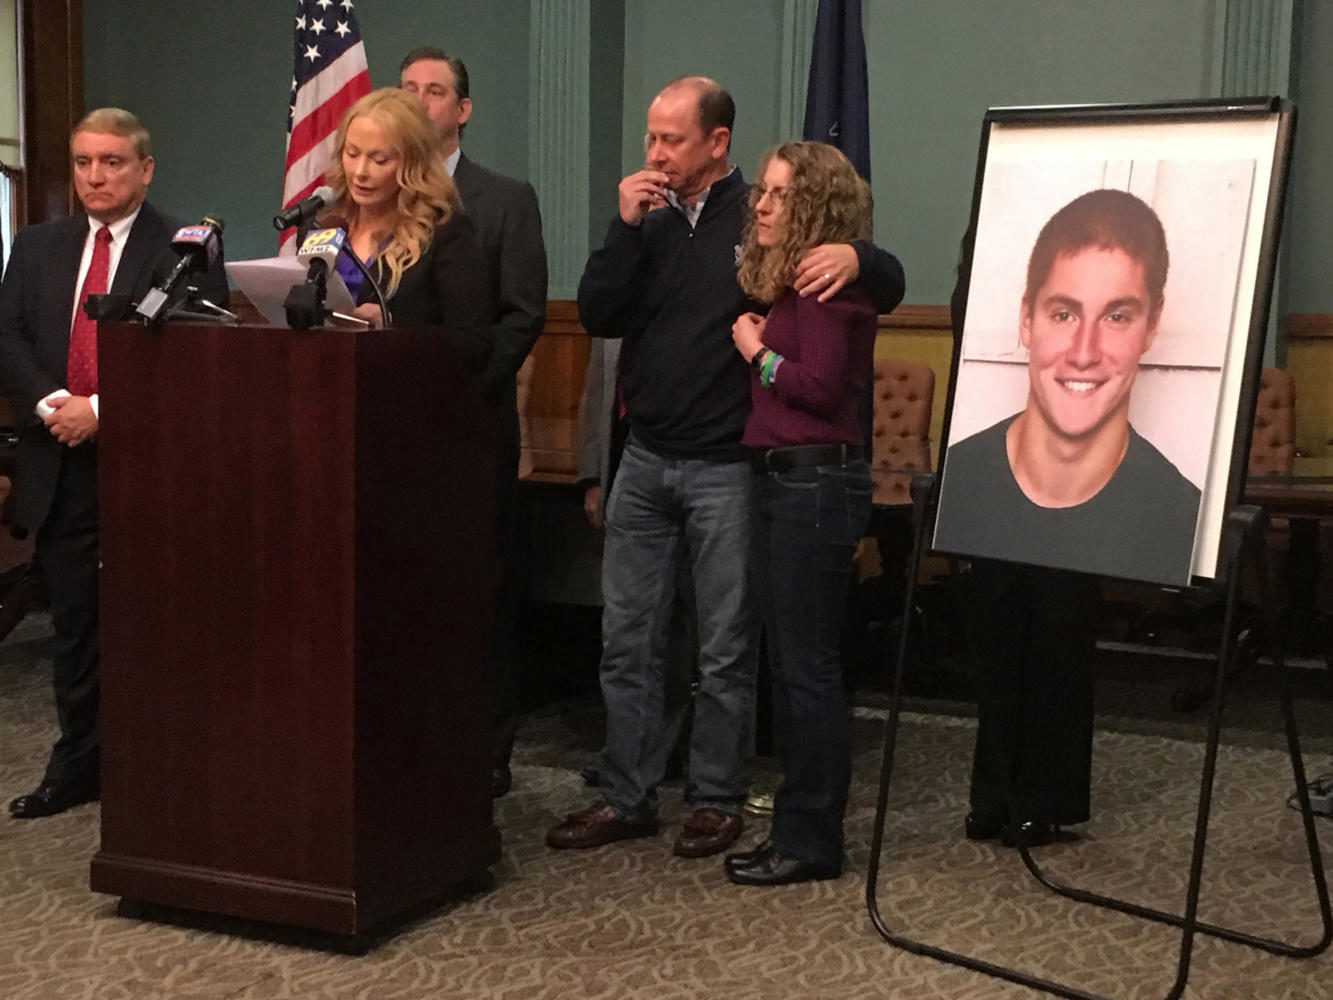 At podium is Stacy Parks, Miller Centre County District Attorney, with James and Evelyn Piazza, parents of Timothy Piazza, 19, of Readington Township, N.J. during a press conference at Bellefonte courthouse on Friday morning May 5, 2017.  (David Swanson/Philadelphia Inquirer/TNS)